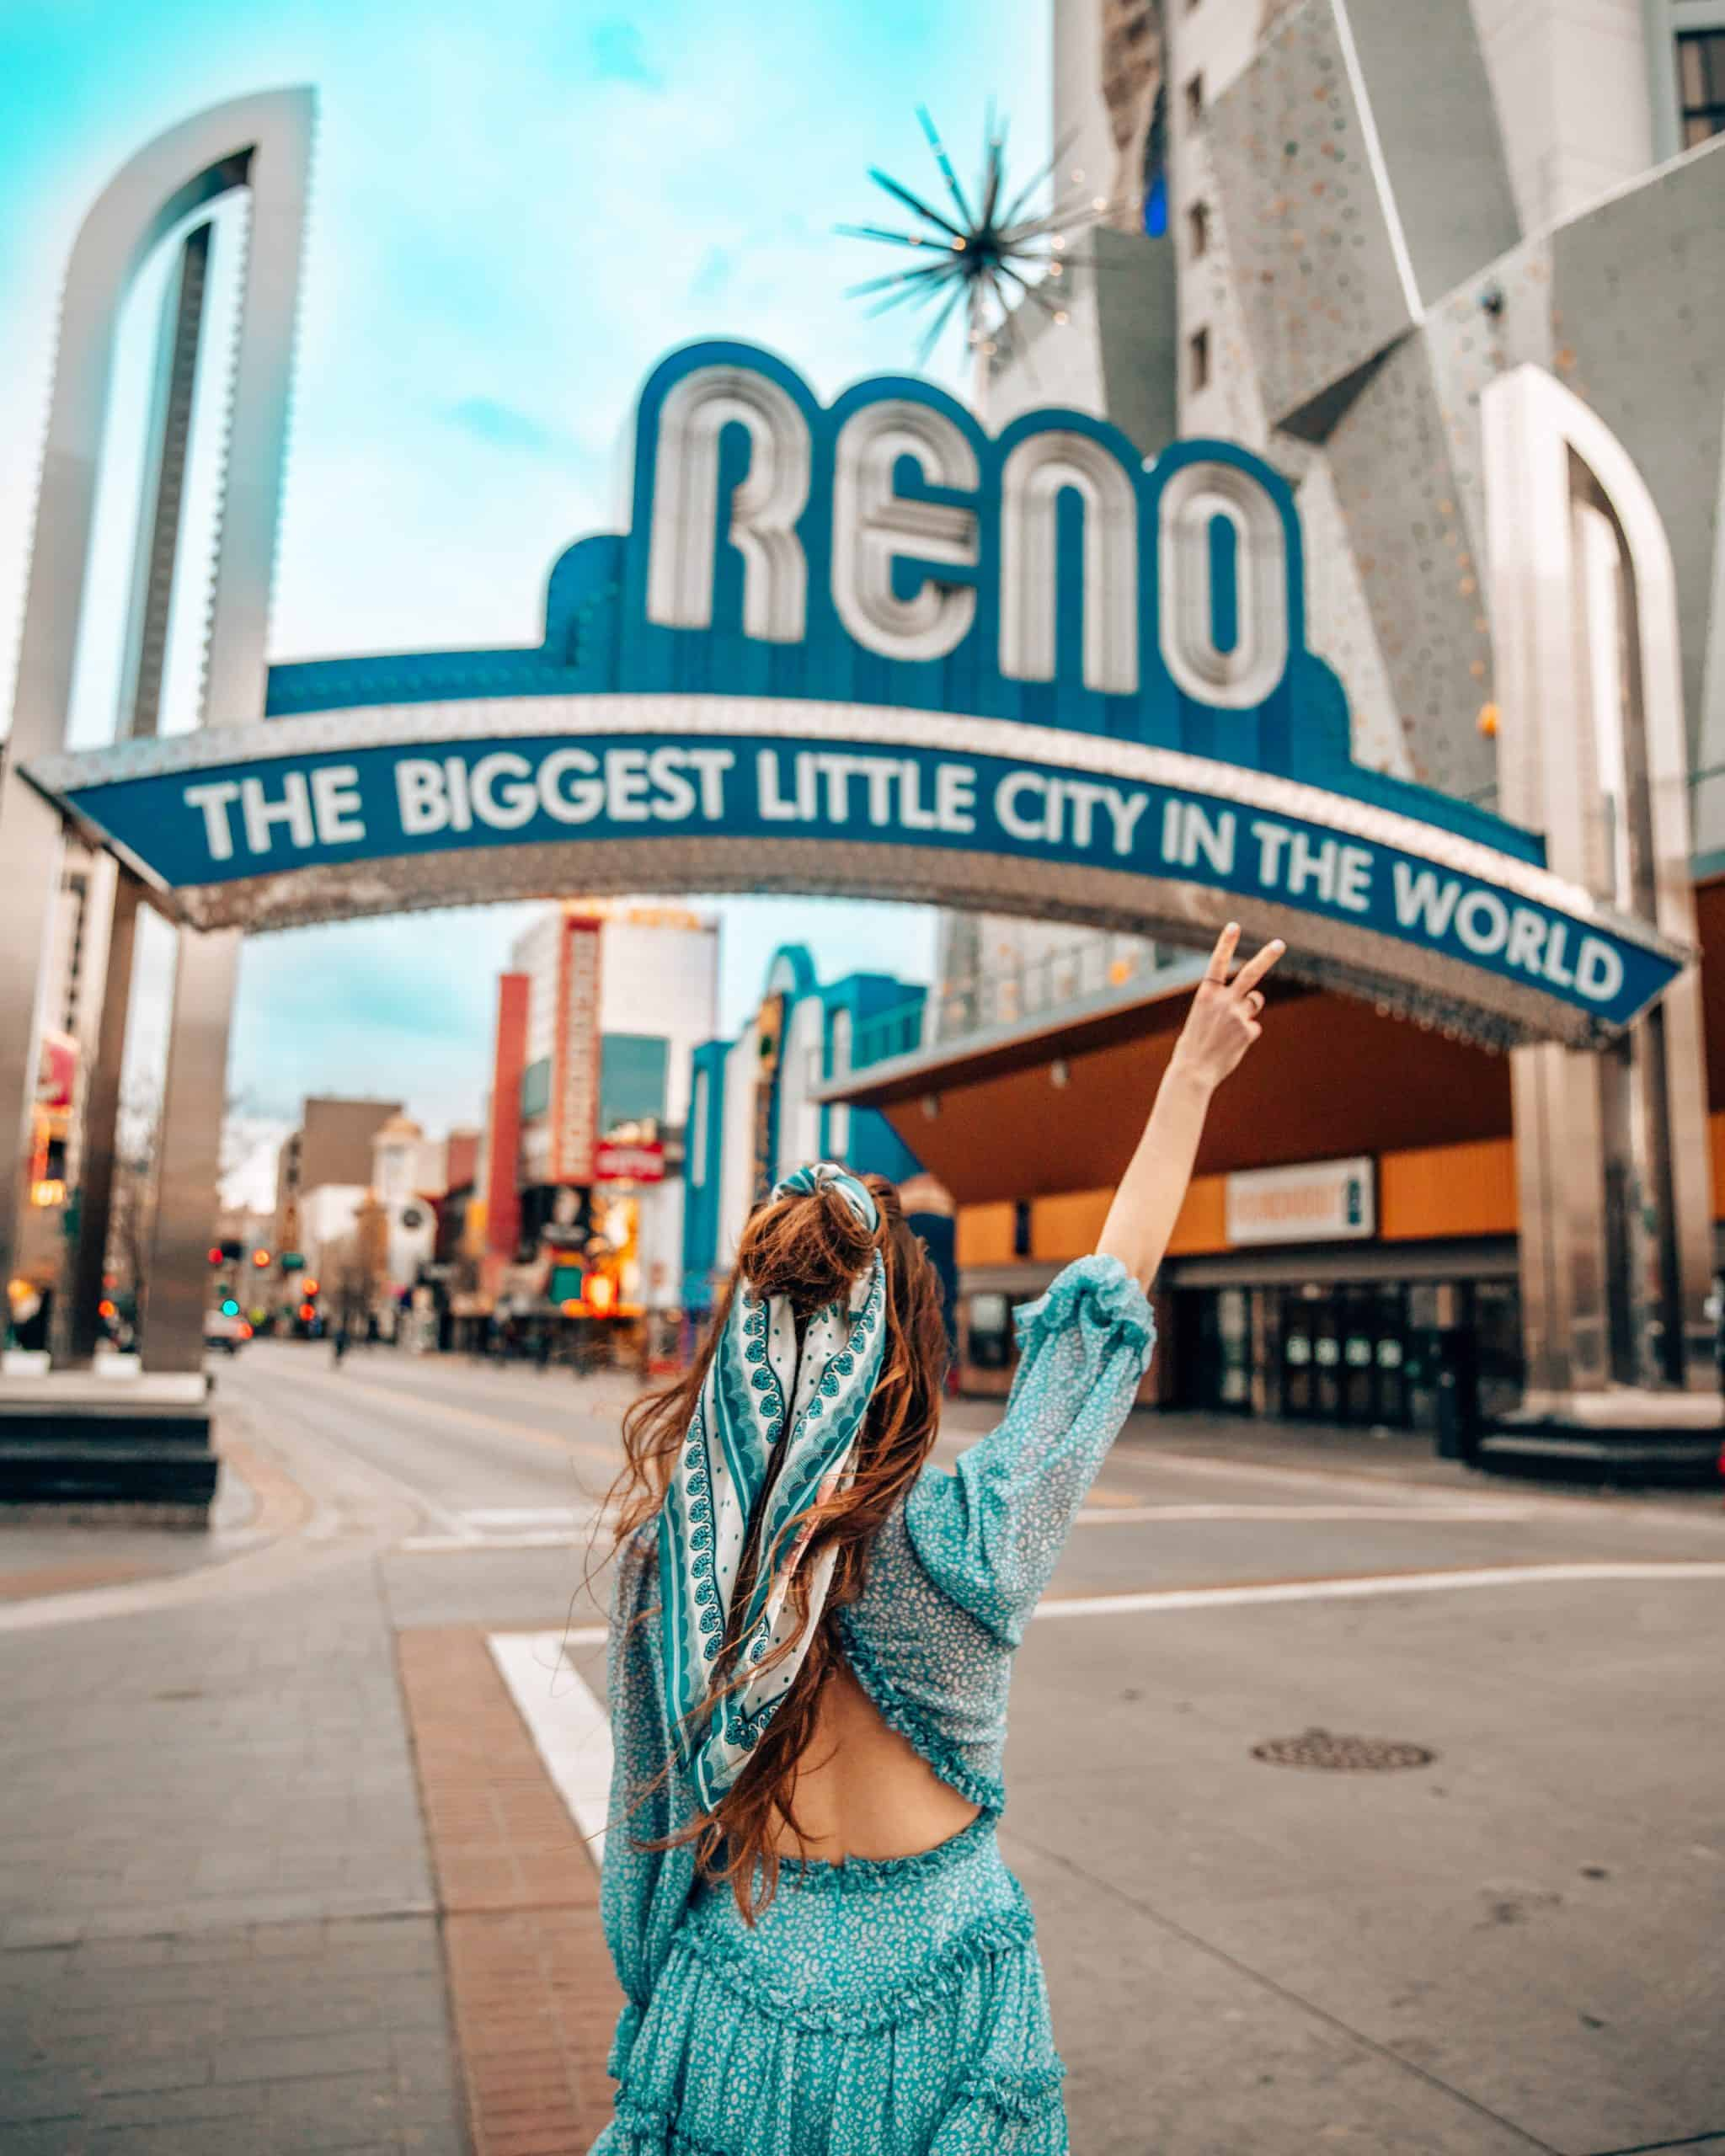 Biggest Little City in the World Sign in Reno - The Next Trip